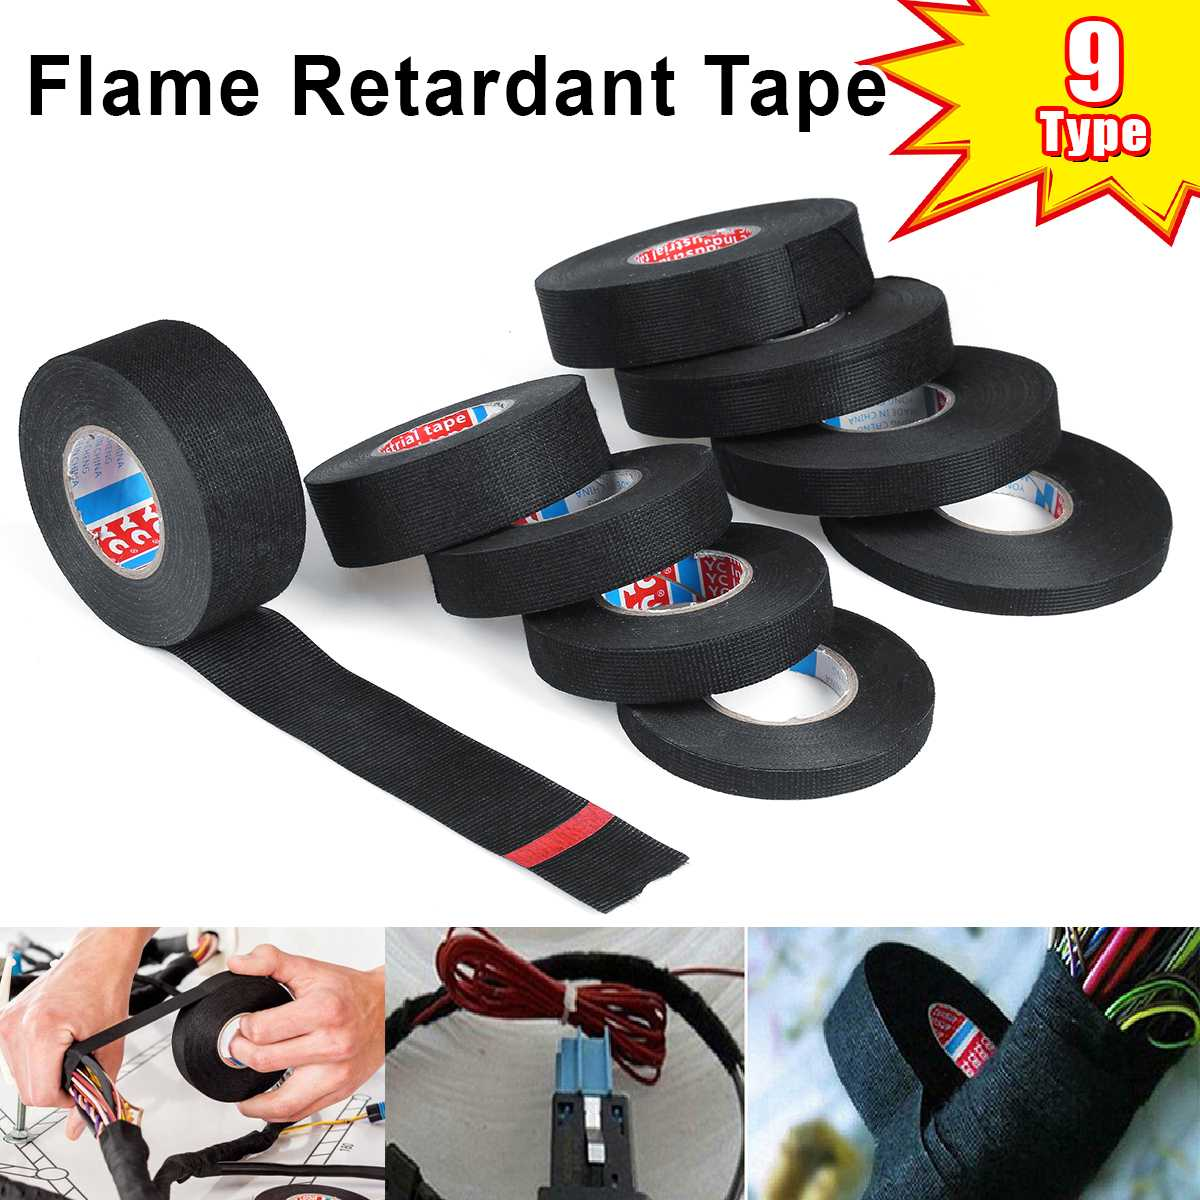 9/15/19/25/32/38mmx15/20/25m Heat resistant Wiring Harness Tape Looms Wiring Harness Cloth Fabric Tape Adhesive Cable Protection|Tape|   - AliExpress